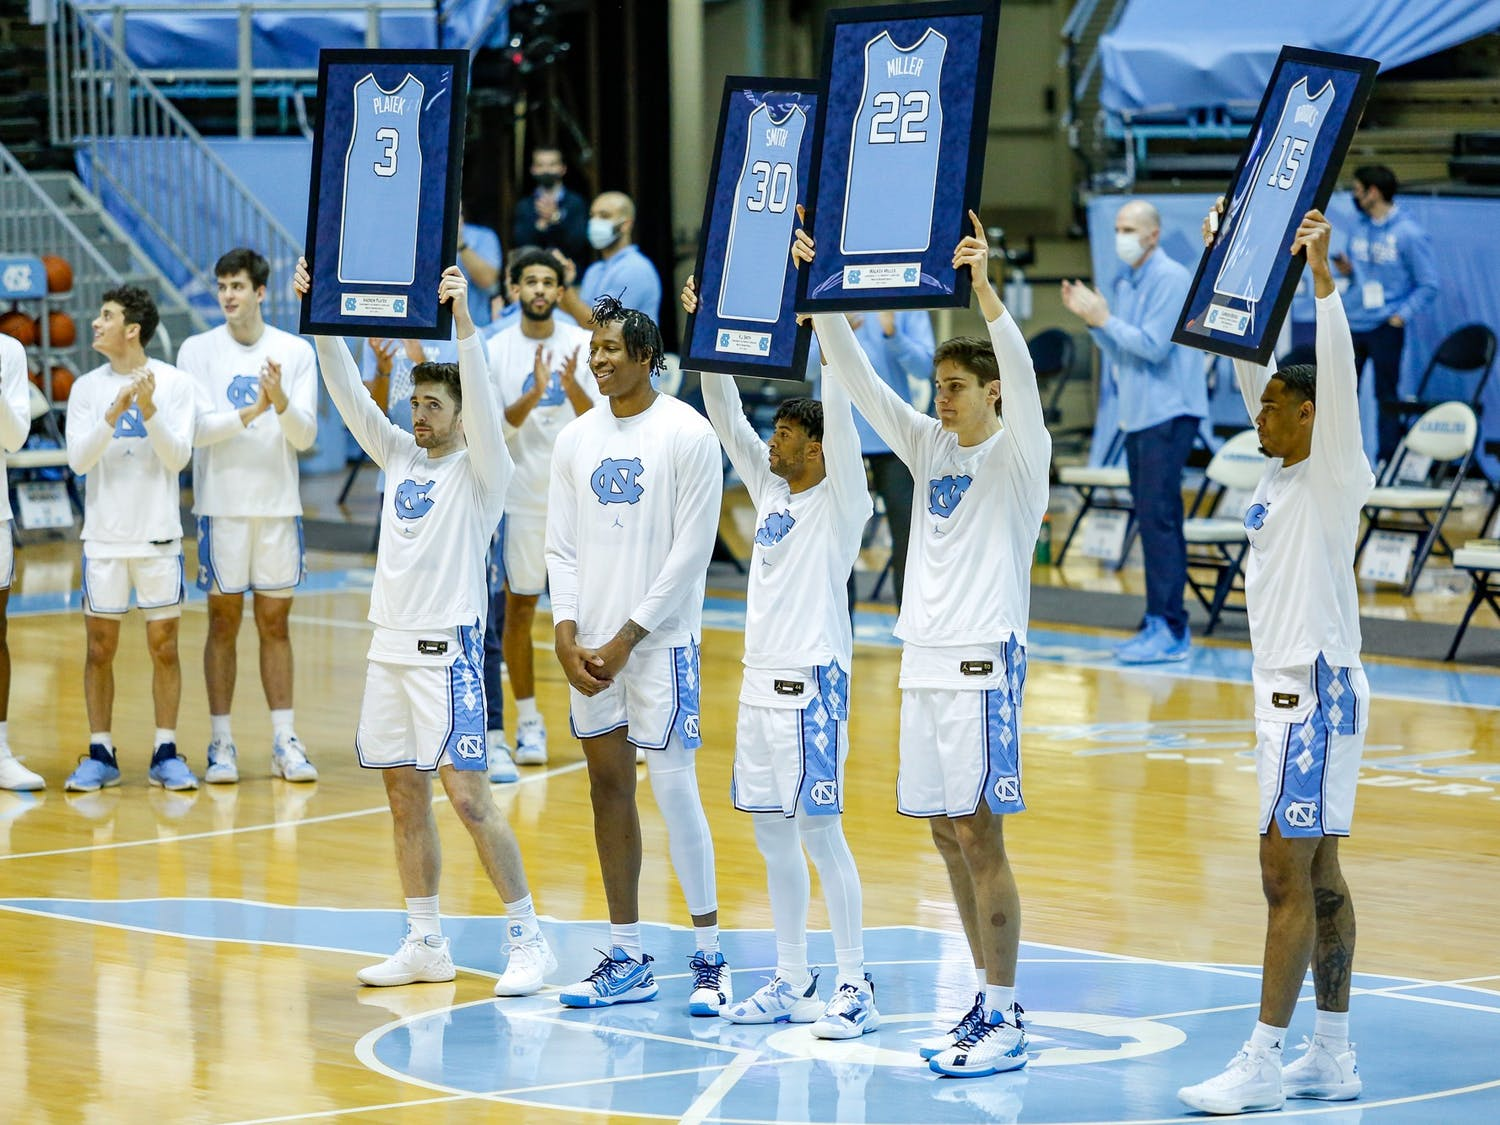 UNC men's basketball faced off against Duke at home at the Smith Center on Saturday, March 6, 2021. UNC finished their season with a sweep of the Duke team, defeating them 91-73. The game also served as senior night for Garrison Brooks, Walker Miller, KJ Smith, and Andrew Platek and marked the Tar Heels as the sixth seed in the ACC Tournament in Greensboro, N.C.